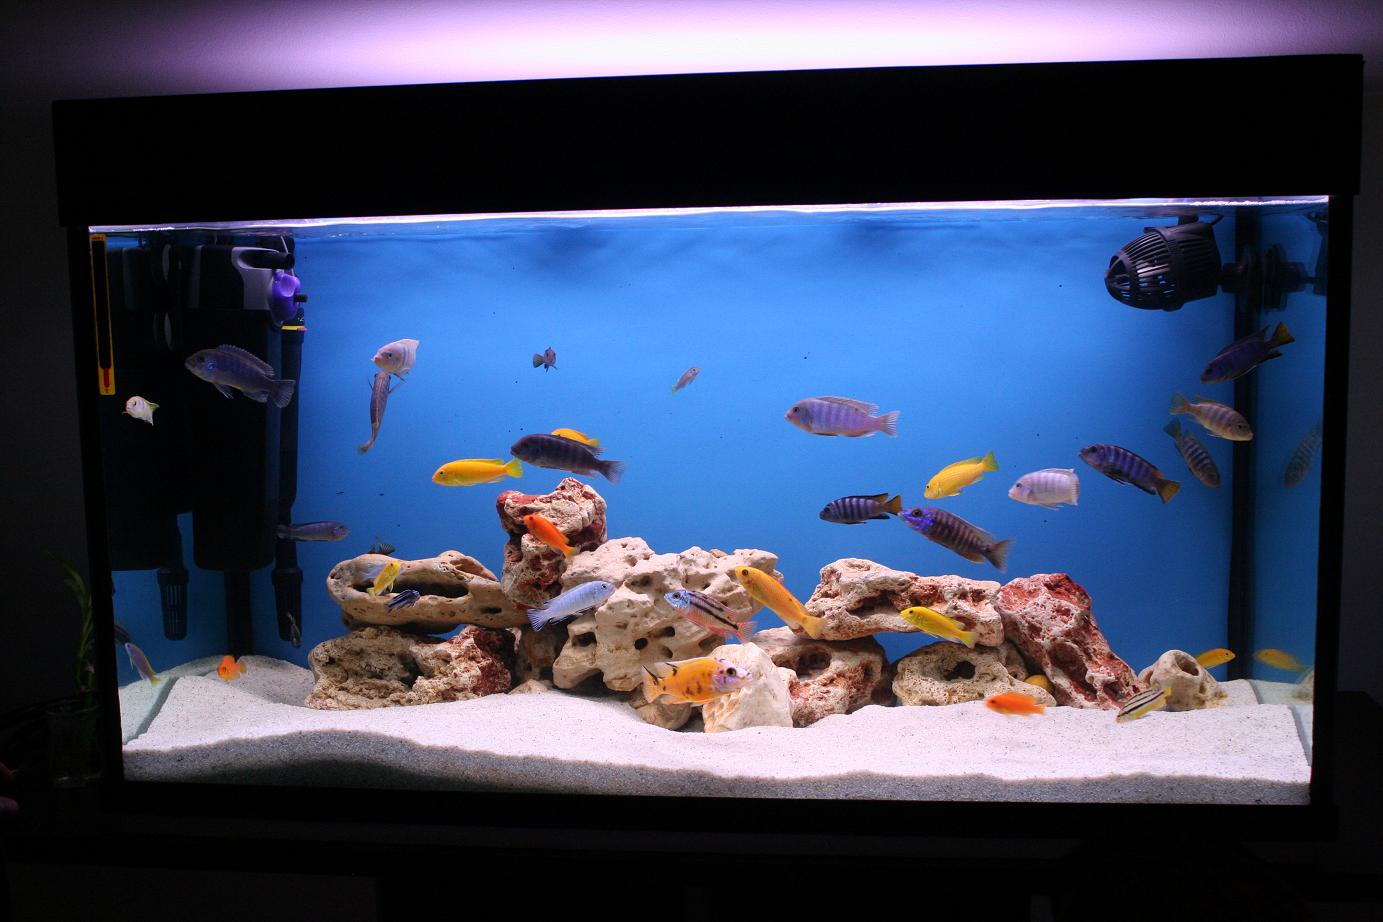 Fish tank in home place - The Most Incredible Fish Aquariums You Have Never Seen